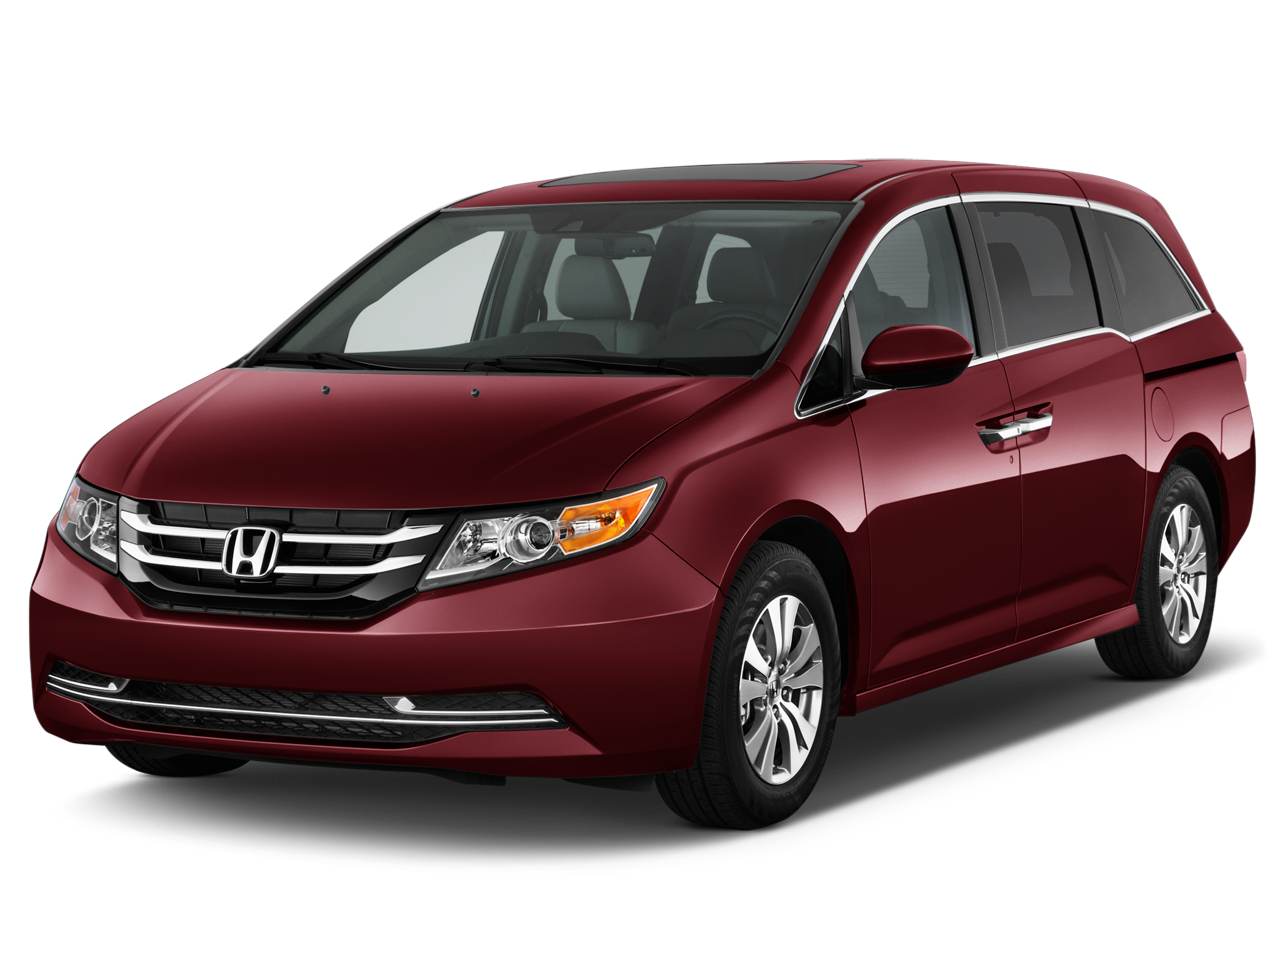 New odyssey for sale vacaville honda for 2016 honda odyssey colors